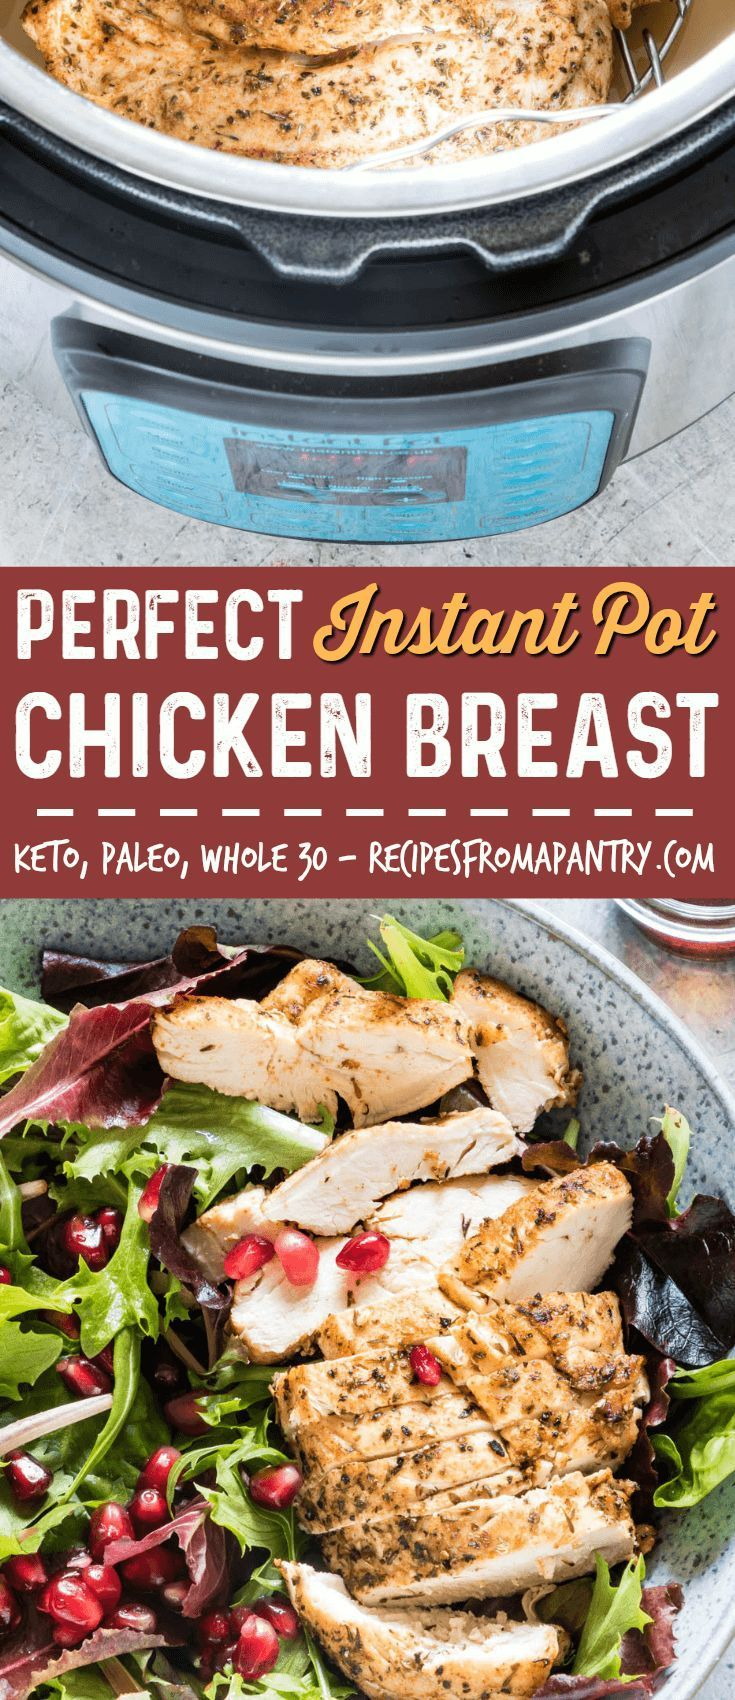 If you're looking for the BEST and EASIEST Instant Pot chicken breast recipe, you've found it! This Instant Pot recipe produces flavourful, moist, and delicious chicken breasts in no time at all. Use fresh chicken breasts or frozen chicken breasts! #instantpot #instantpotrecipes #instantpotchickenbreast #instantpotfrozenchickenbreast via @recipespantry